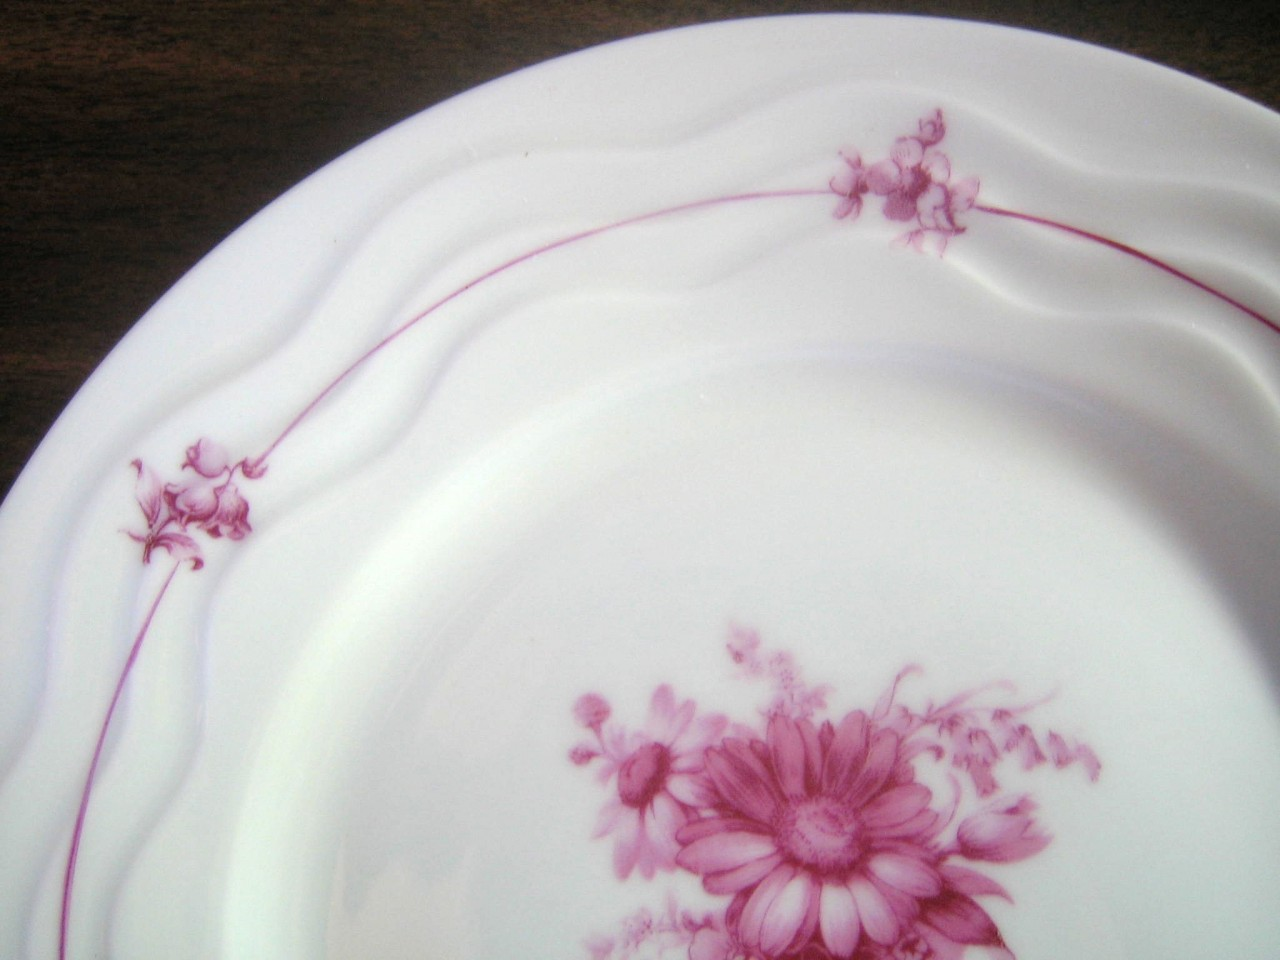 Fuschia Daisy Tulip Fine White Porcelain Wavy Edge Plate Portugal Edge www.DecorativeDishes.net